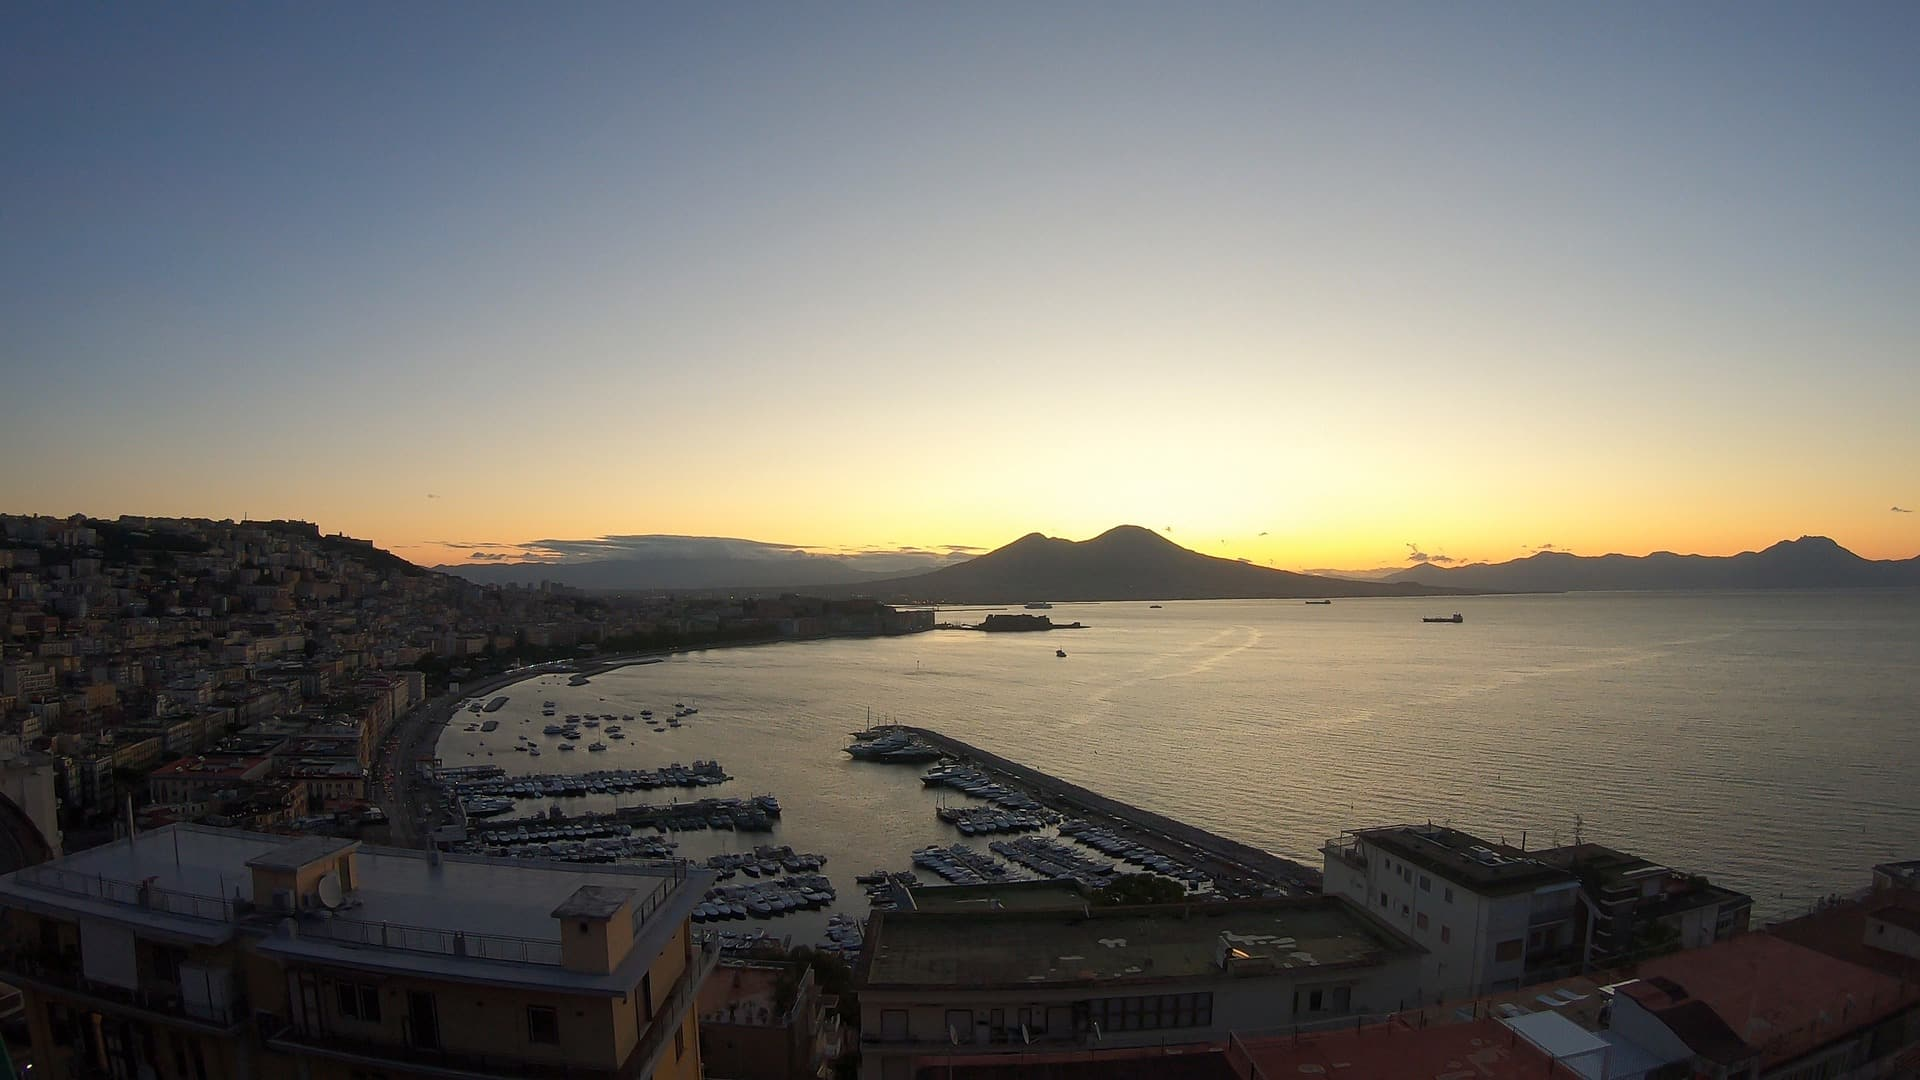 DAY 1 - WELCOME TO NAPLES